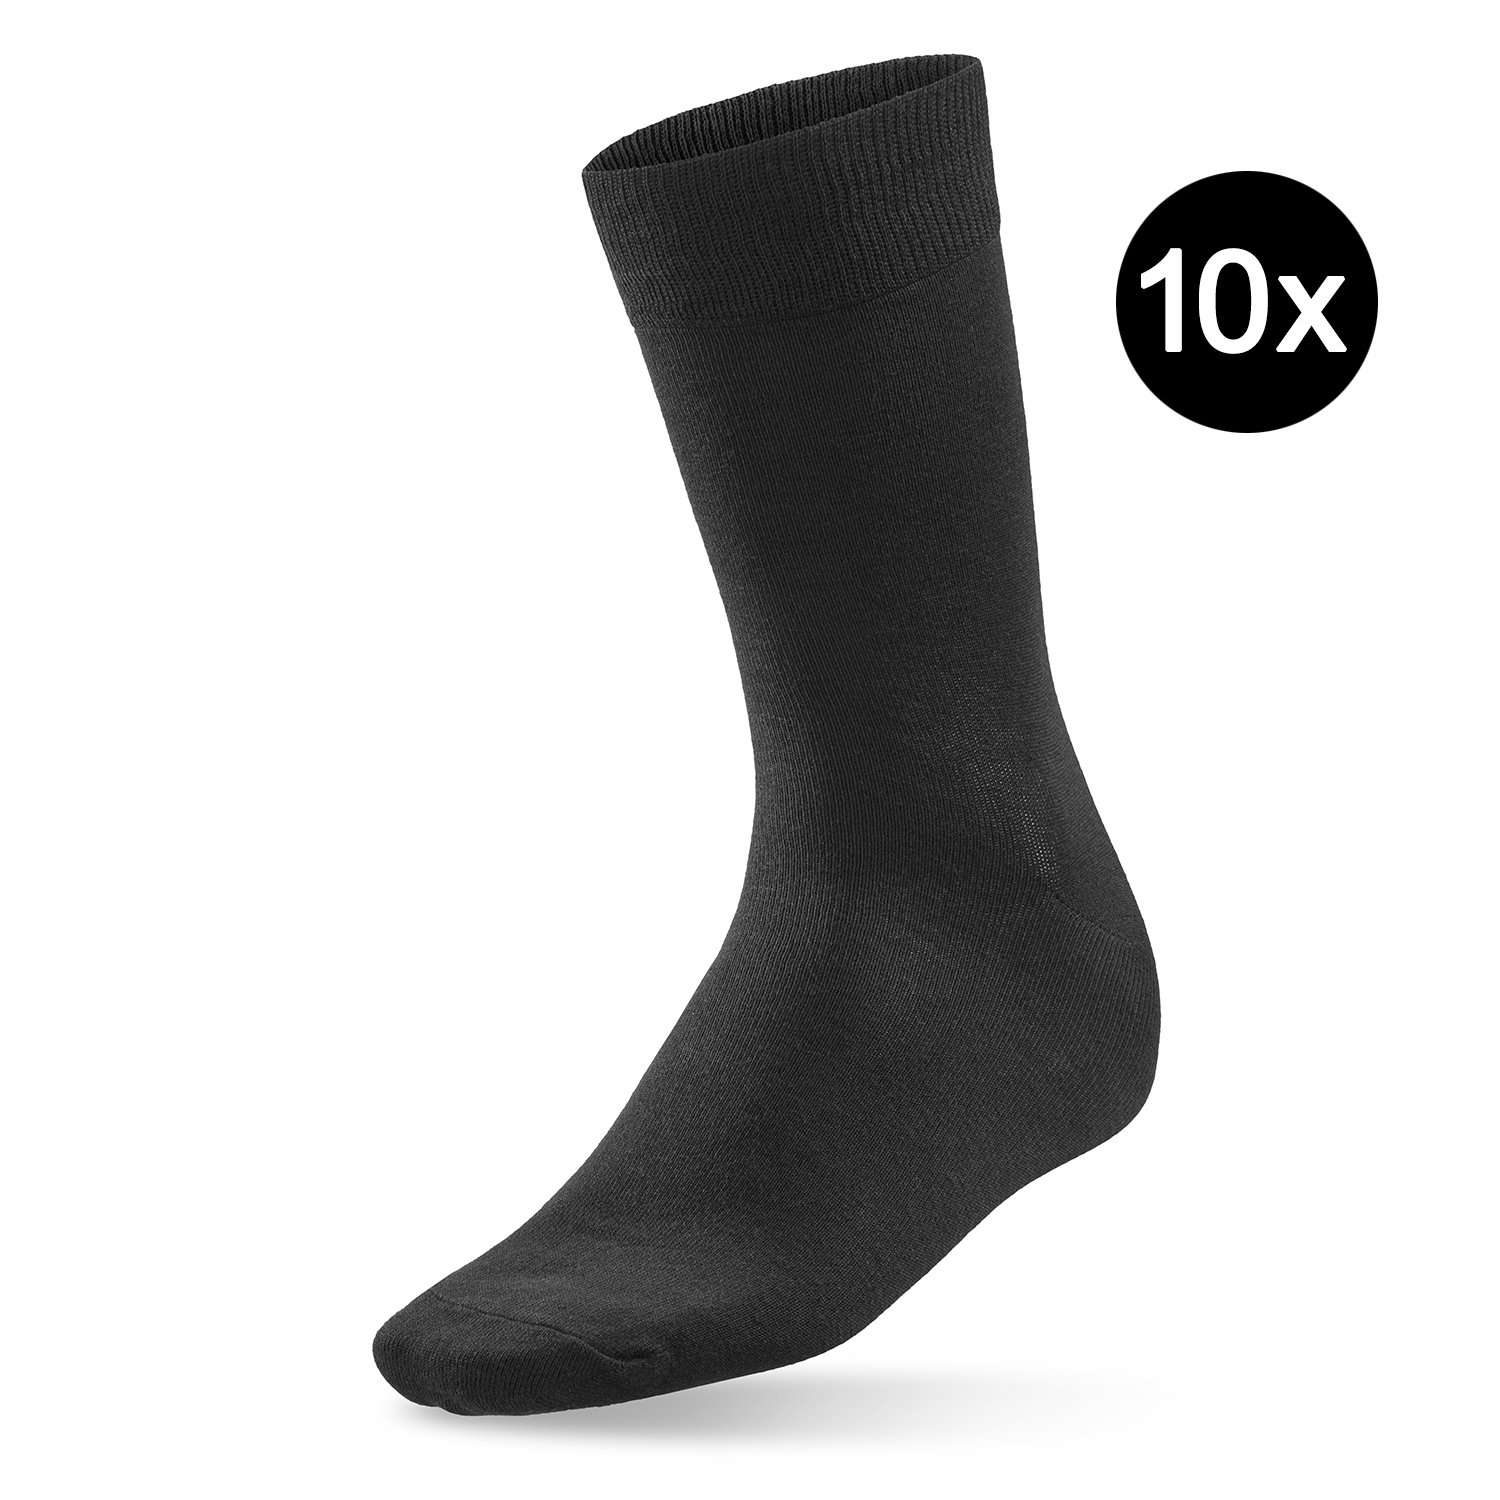 Prime Socks Dailies - 10 pares de calcetines negros para mujer y caballero - calidad de marca - de algodalioso - para trabajo y tiempo libre, 43-46